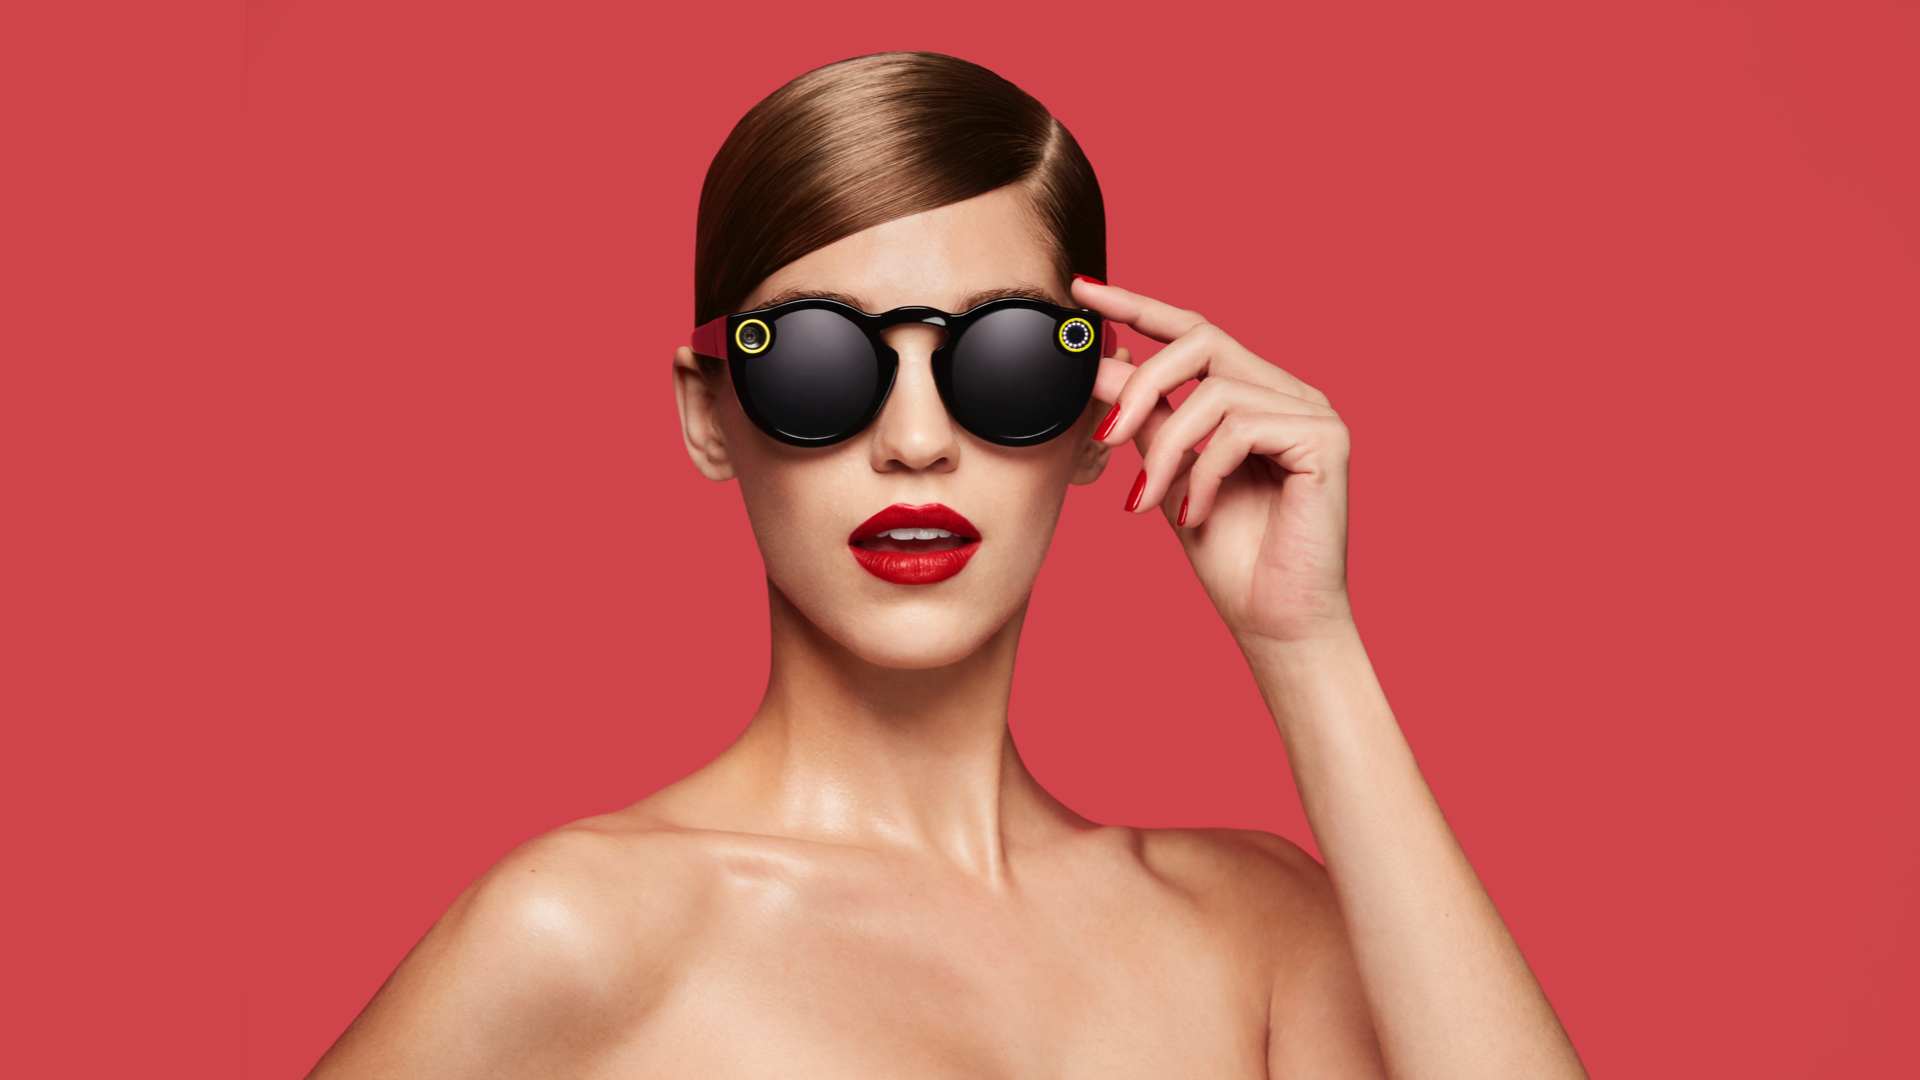 Snap's camera sunglasses, Spectacles.